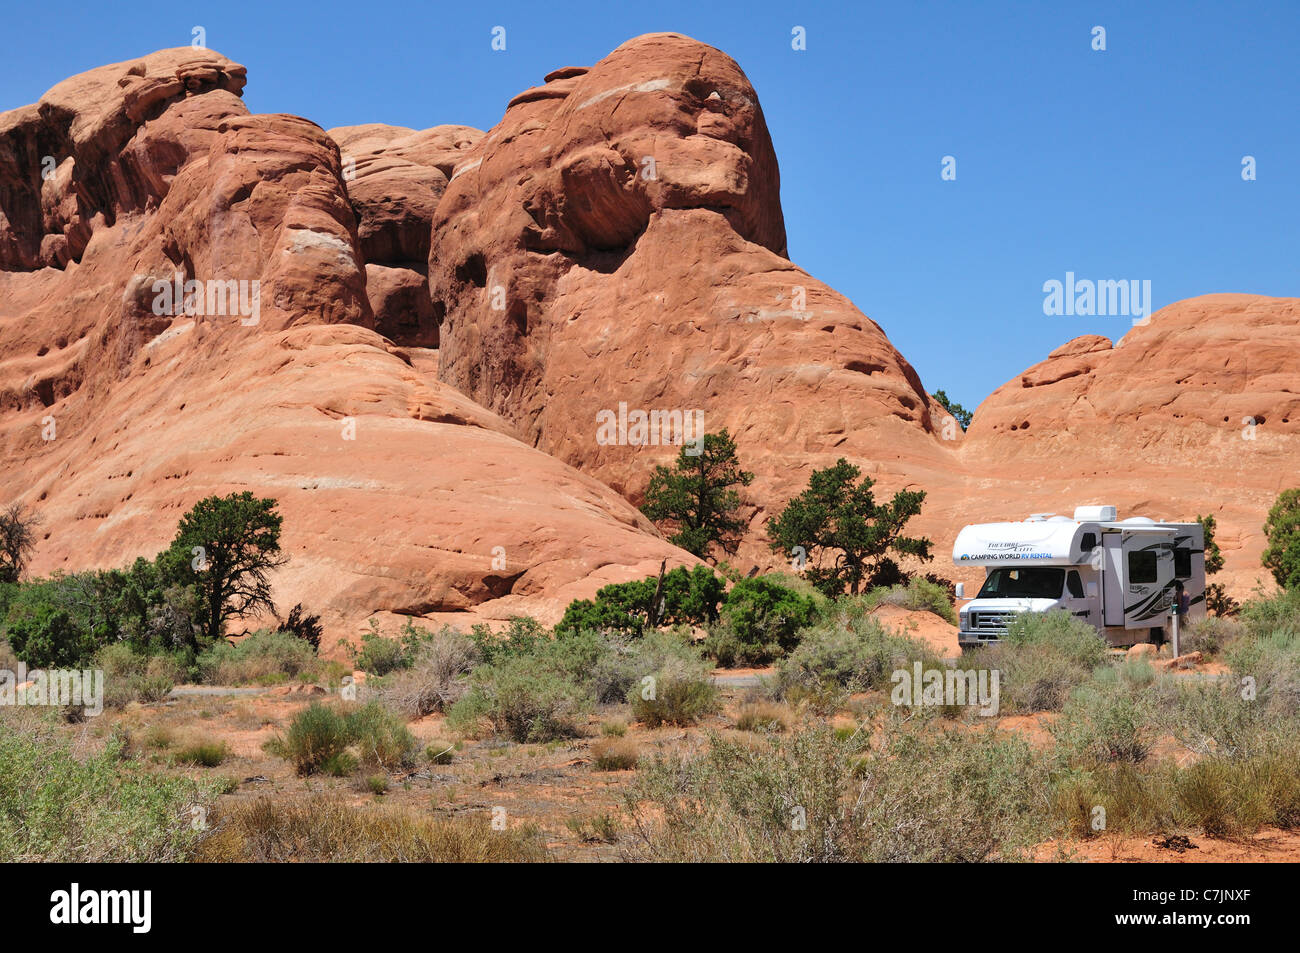 Motorhome camper in Arches National Park - Stock Image